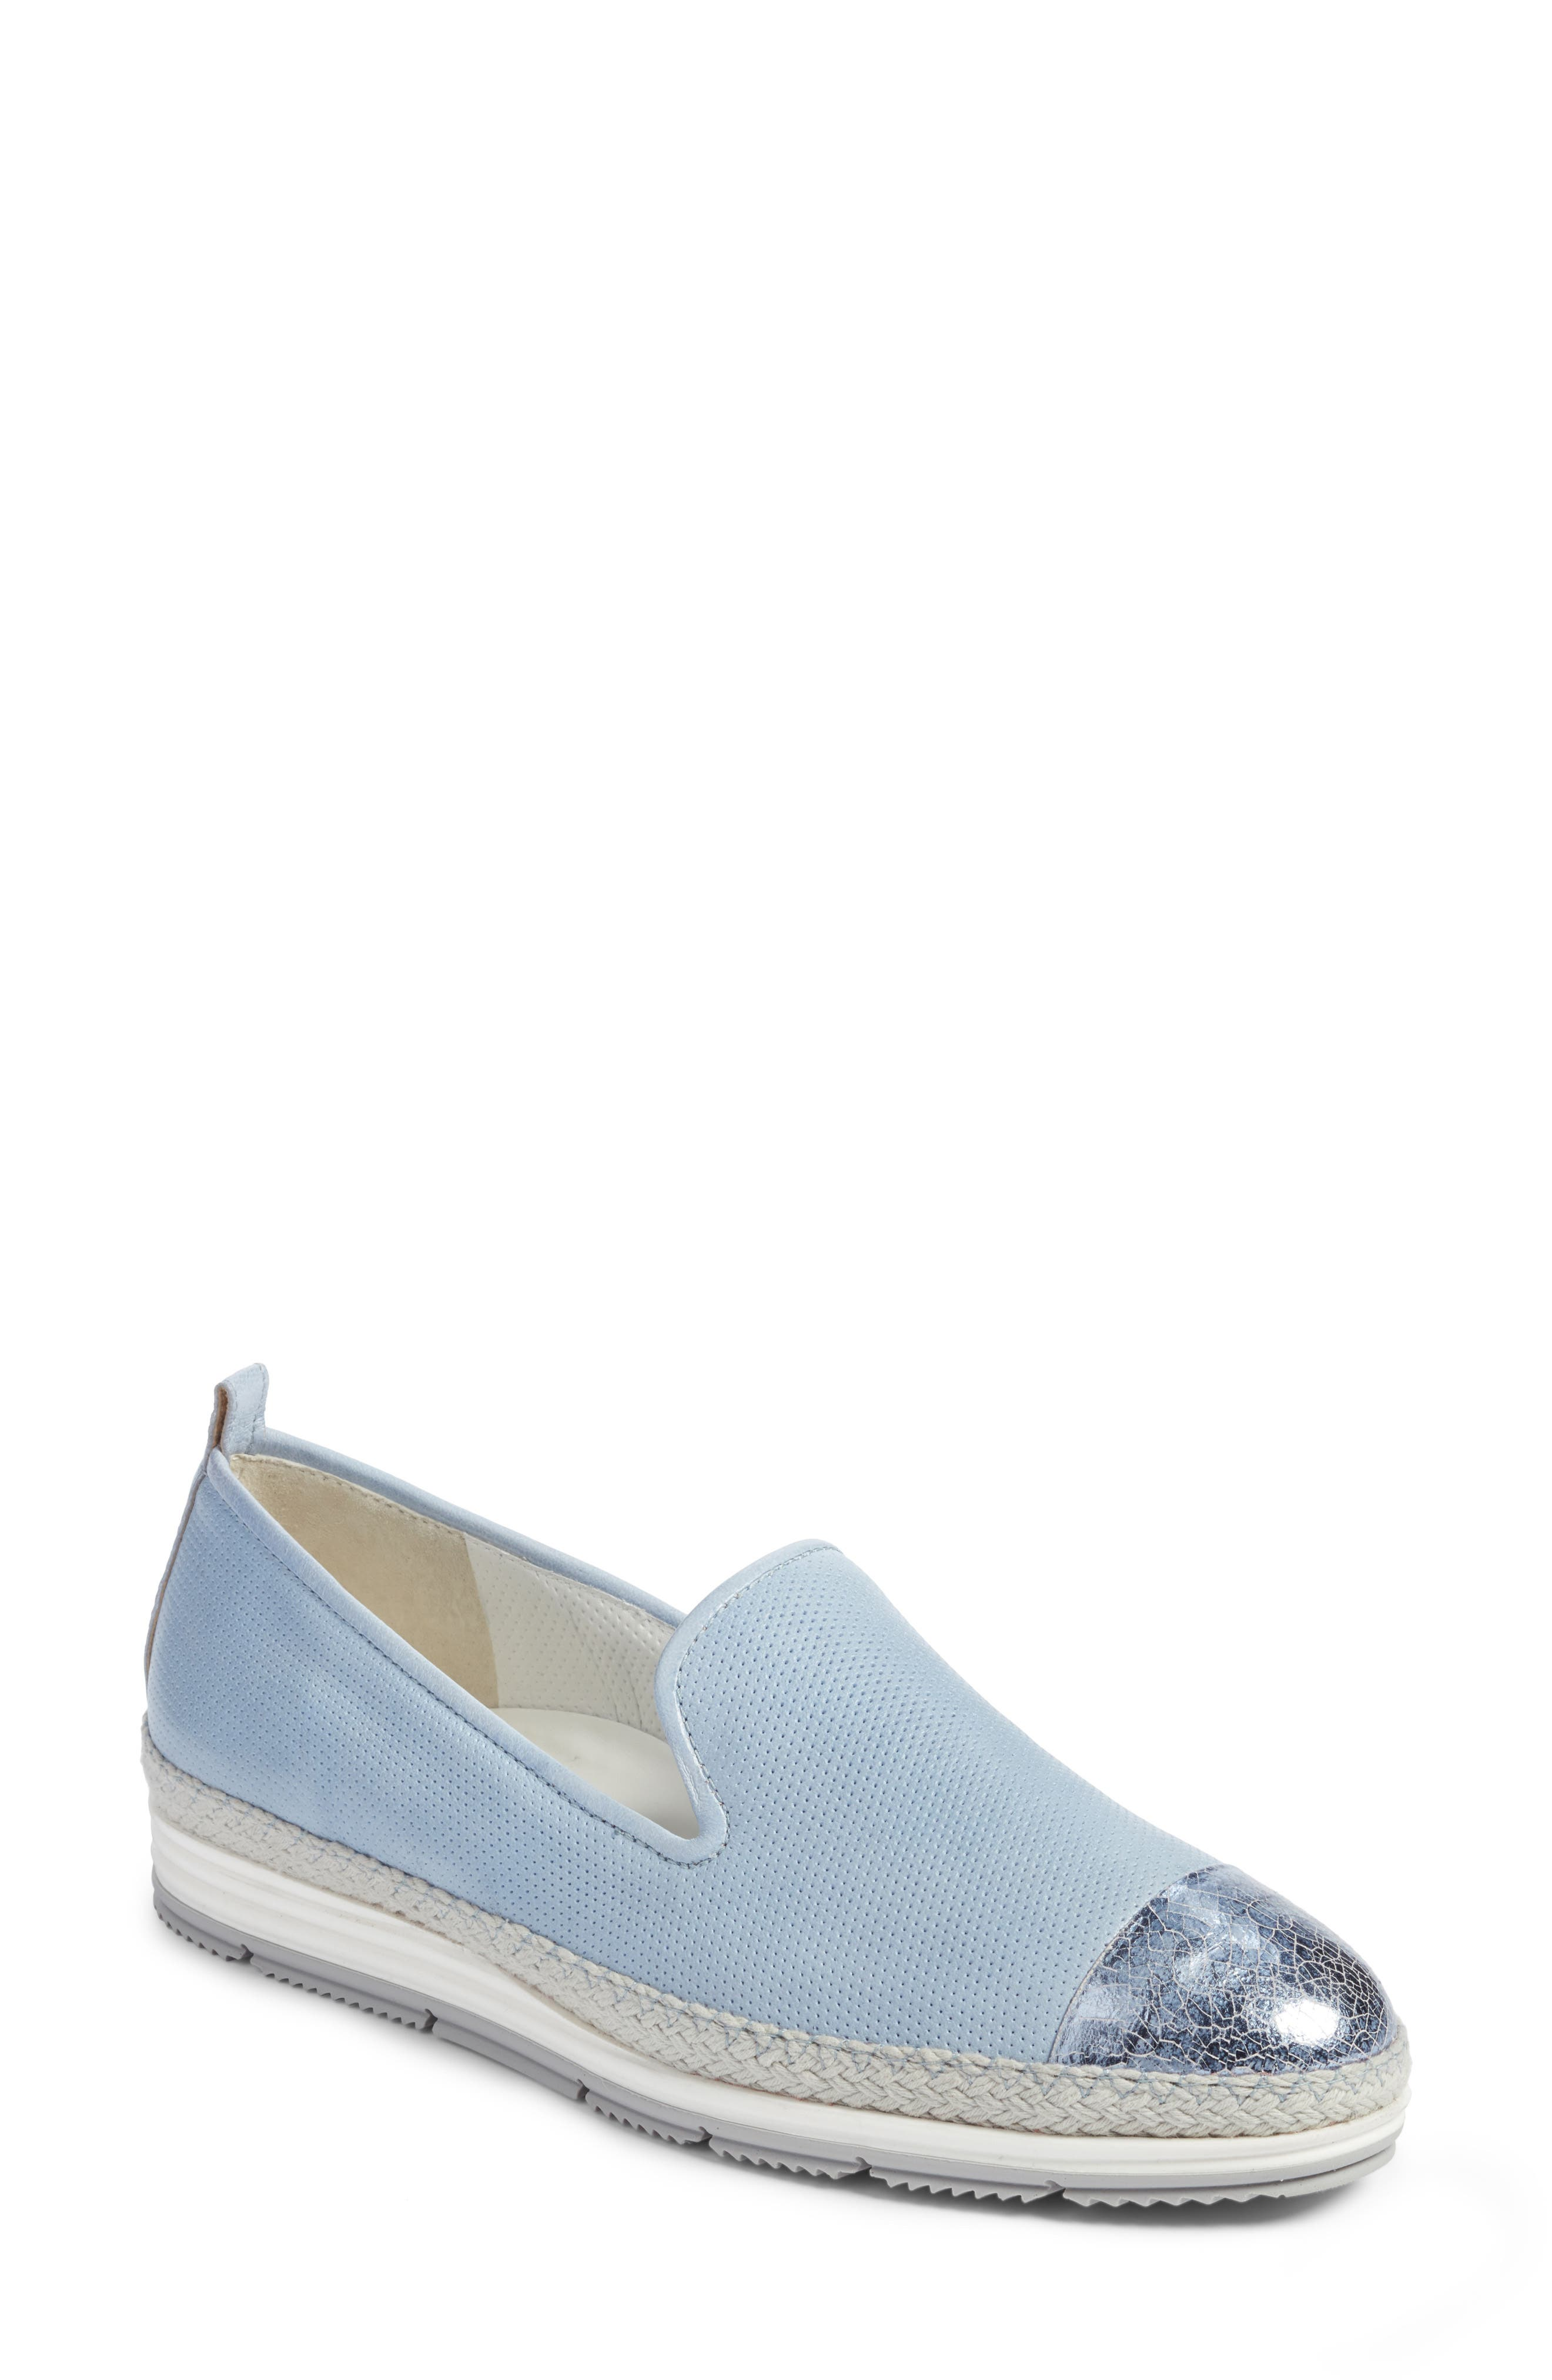 Diane Gold Flat Low Top Trainers By Paul Green YfkkmZ5m